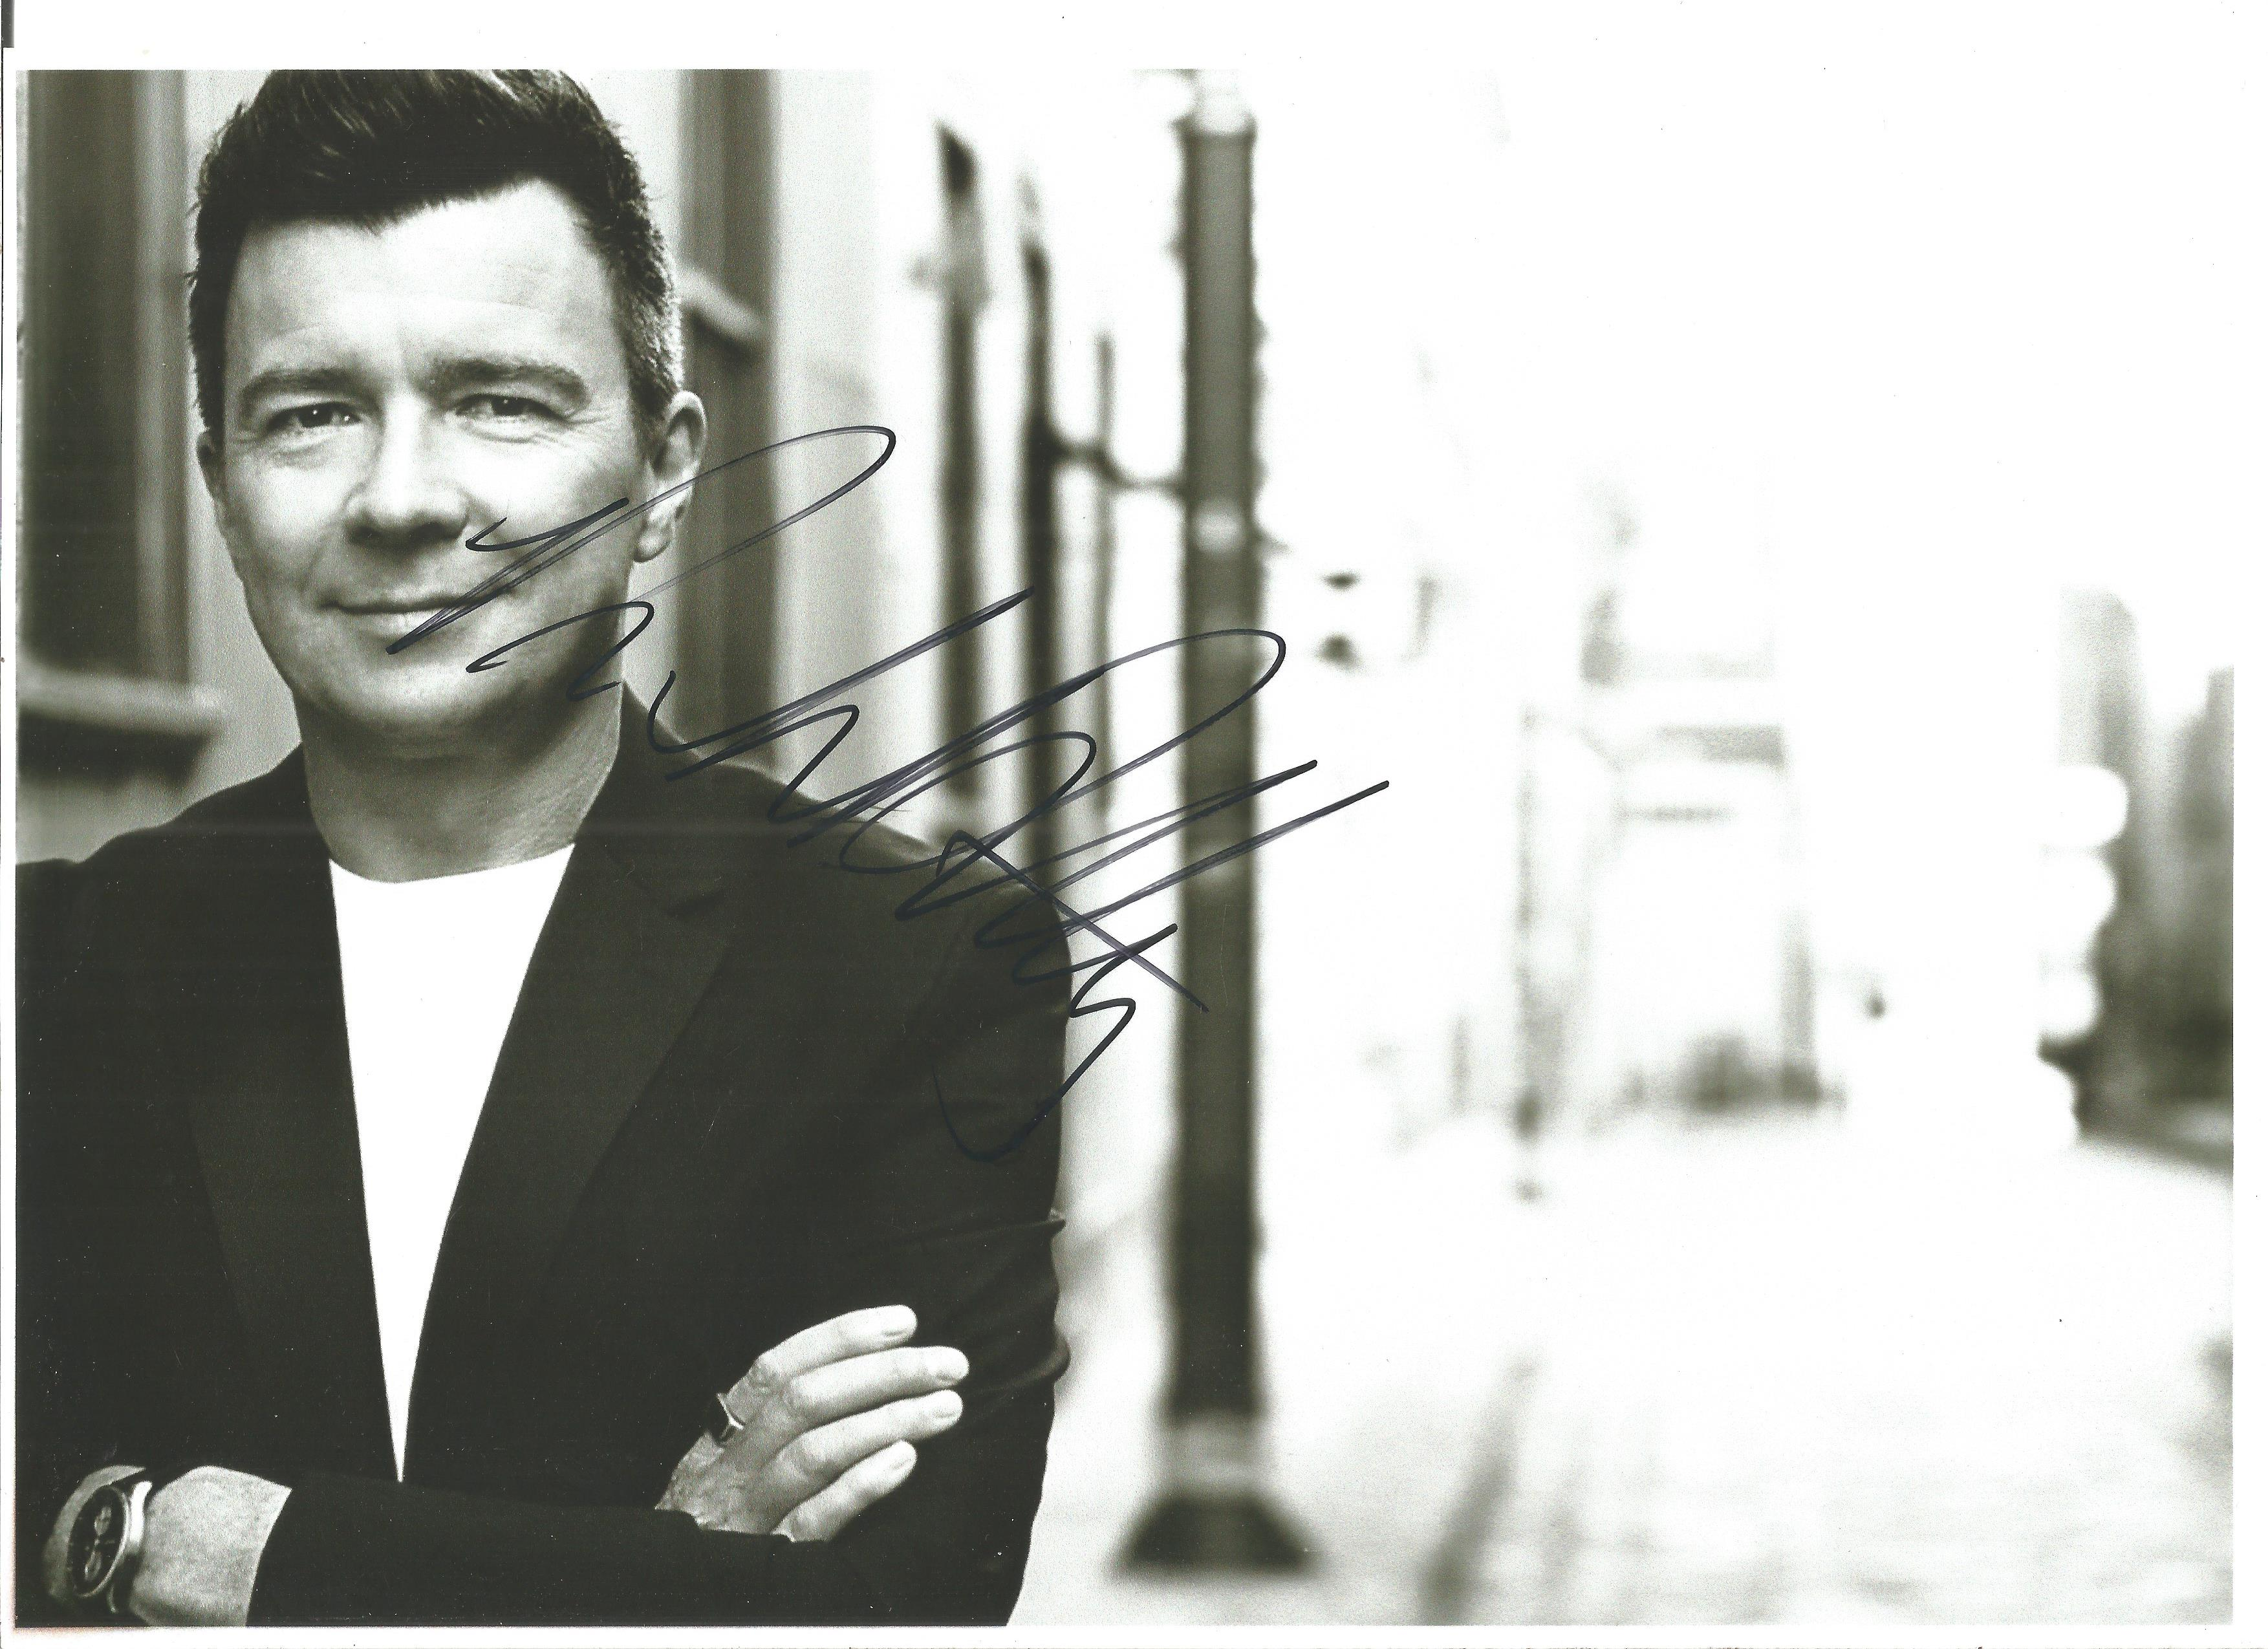 Music Rick Astley signed 10 x 8 inch b/w photo. Good condition. All autographs come with a